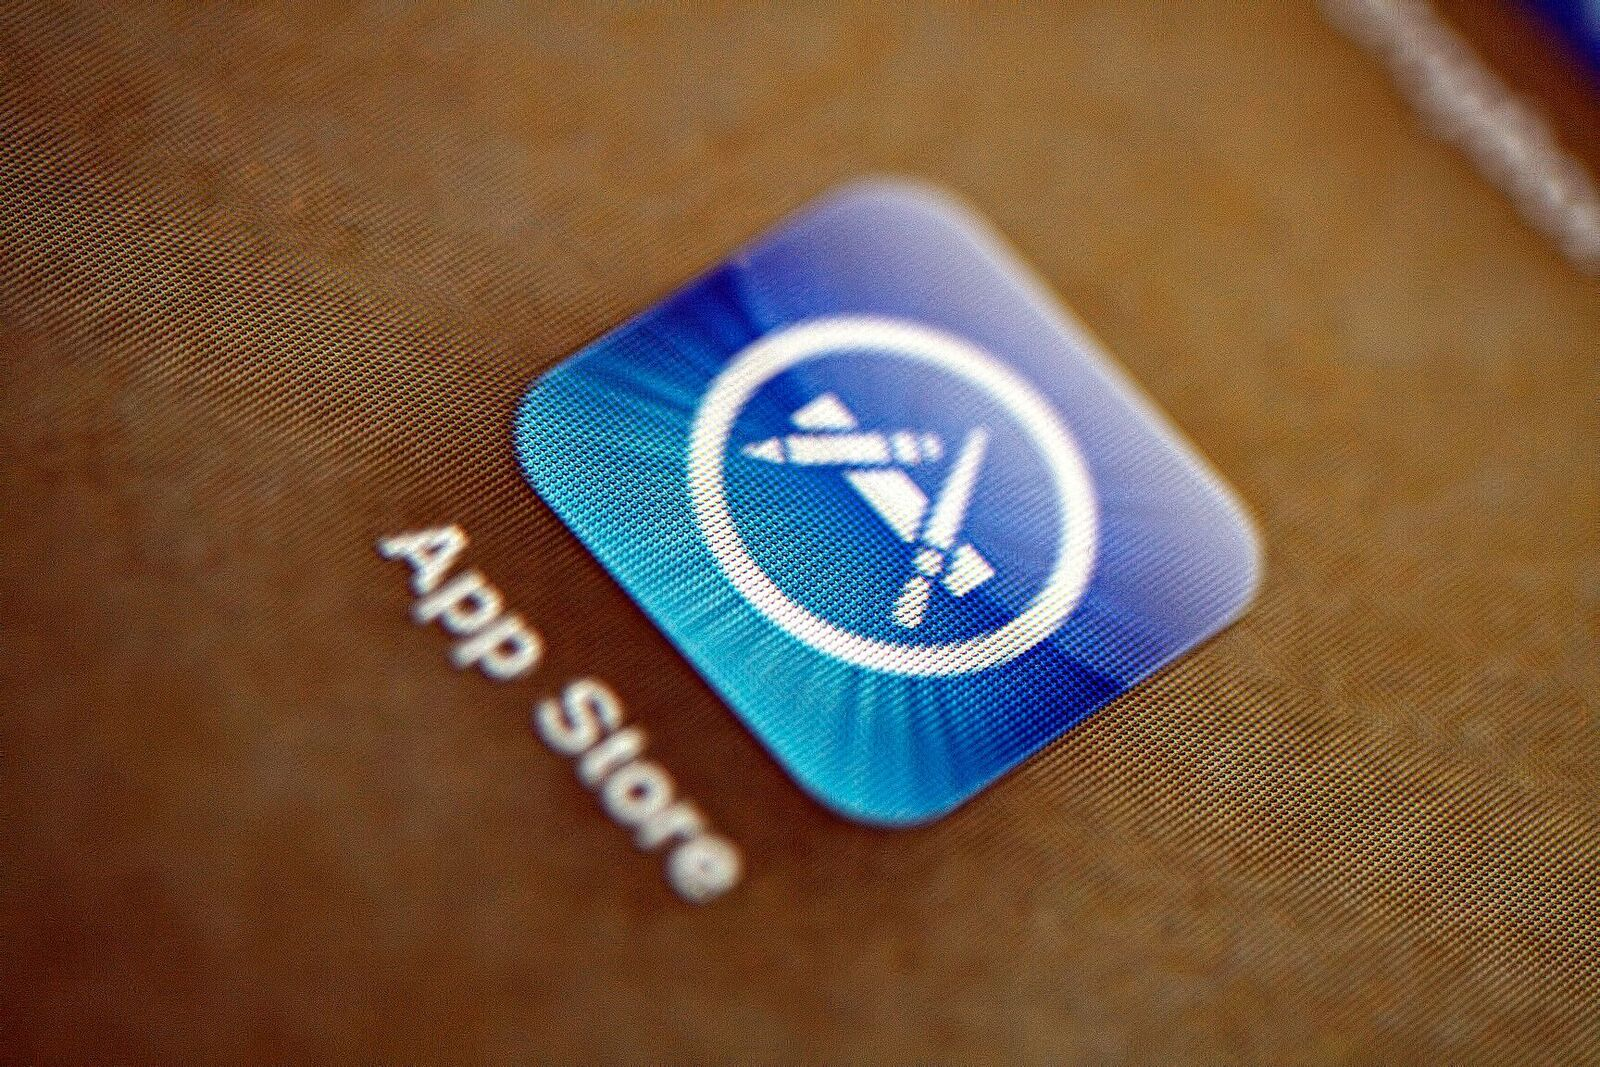 Apple says its developer service was affected by a bug not a security breach